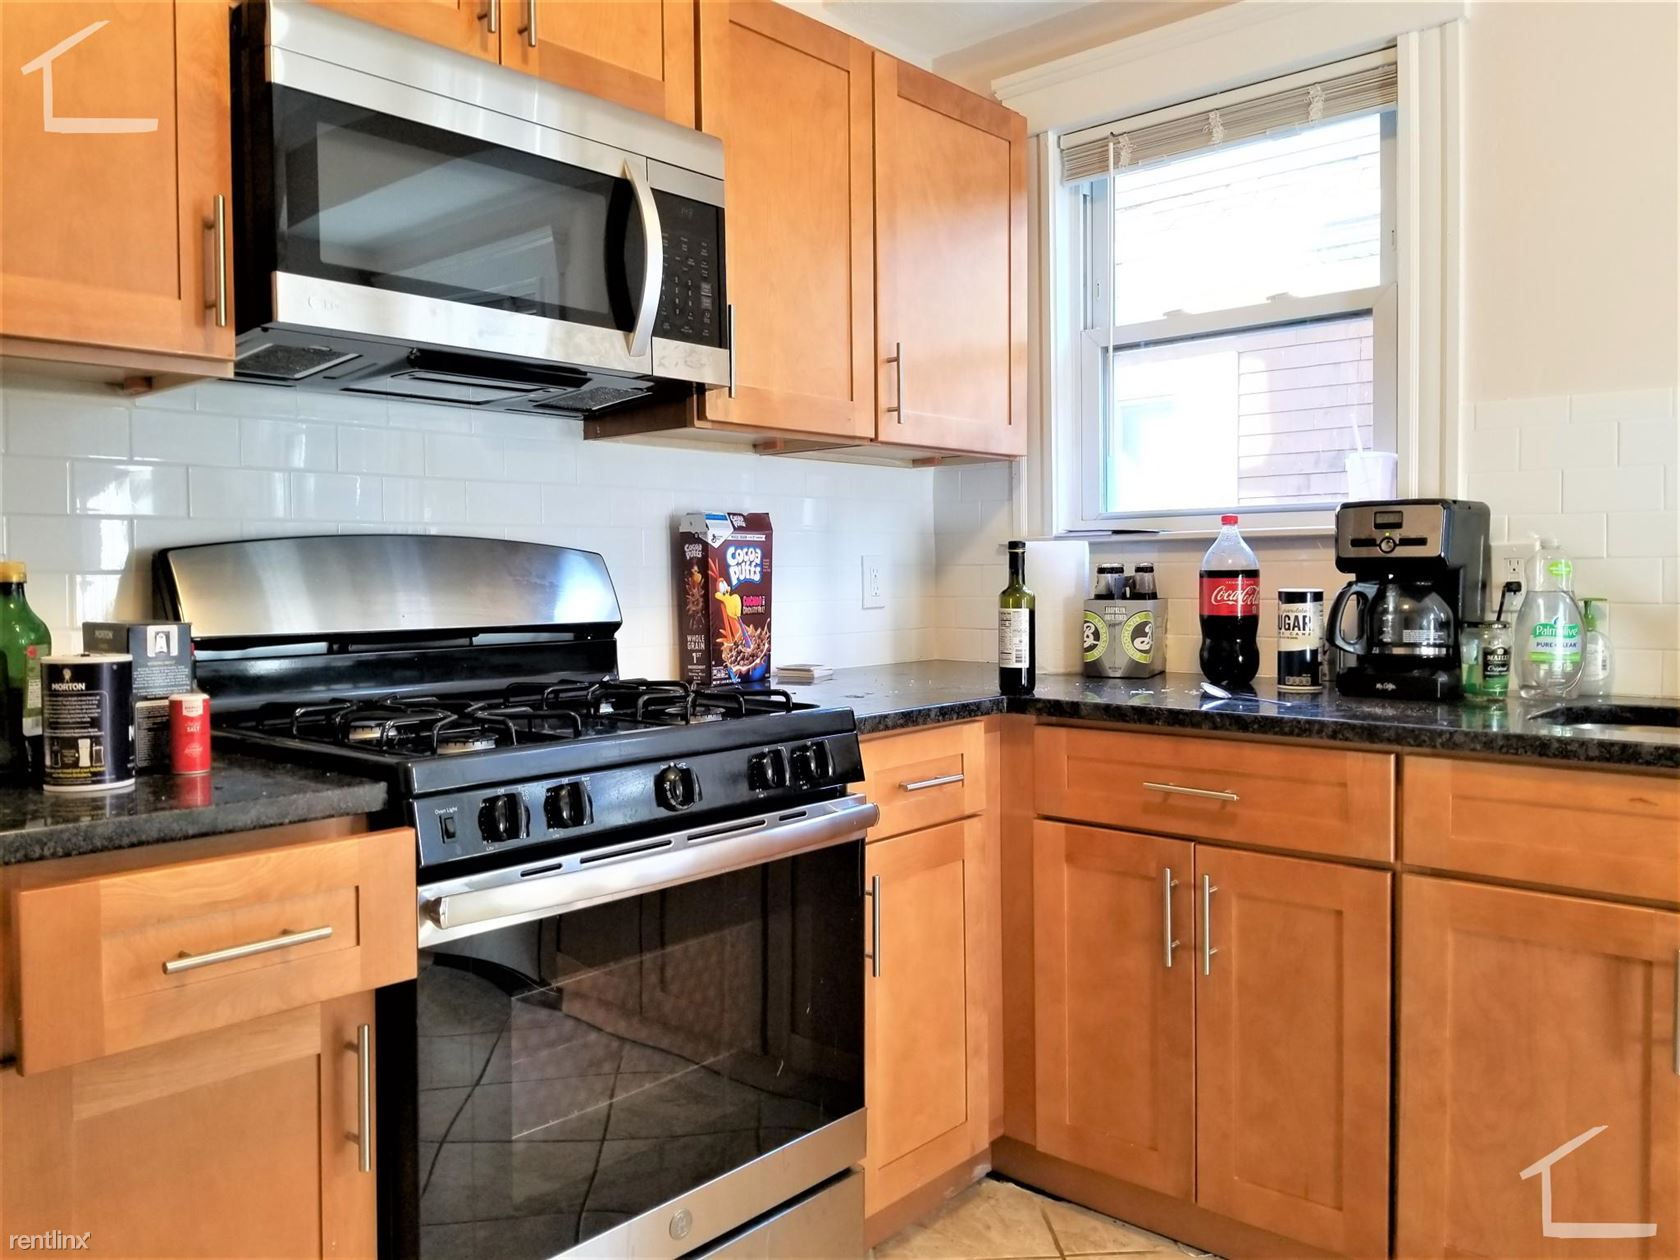 House for Rent in Allston